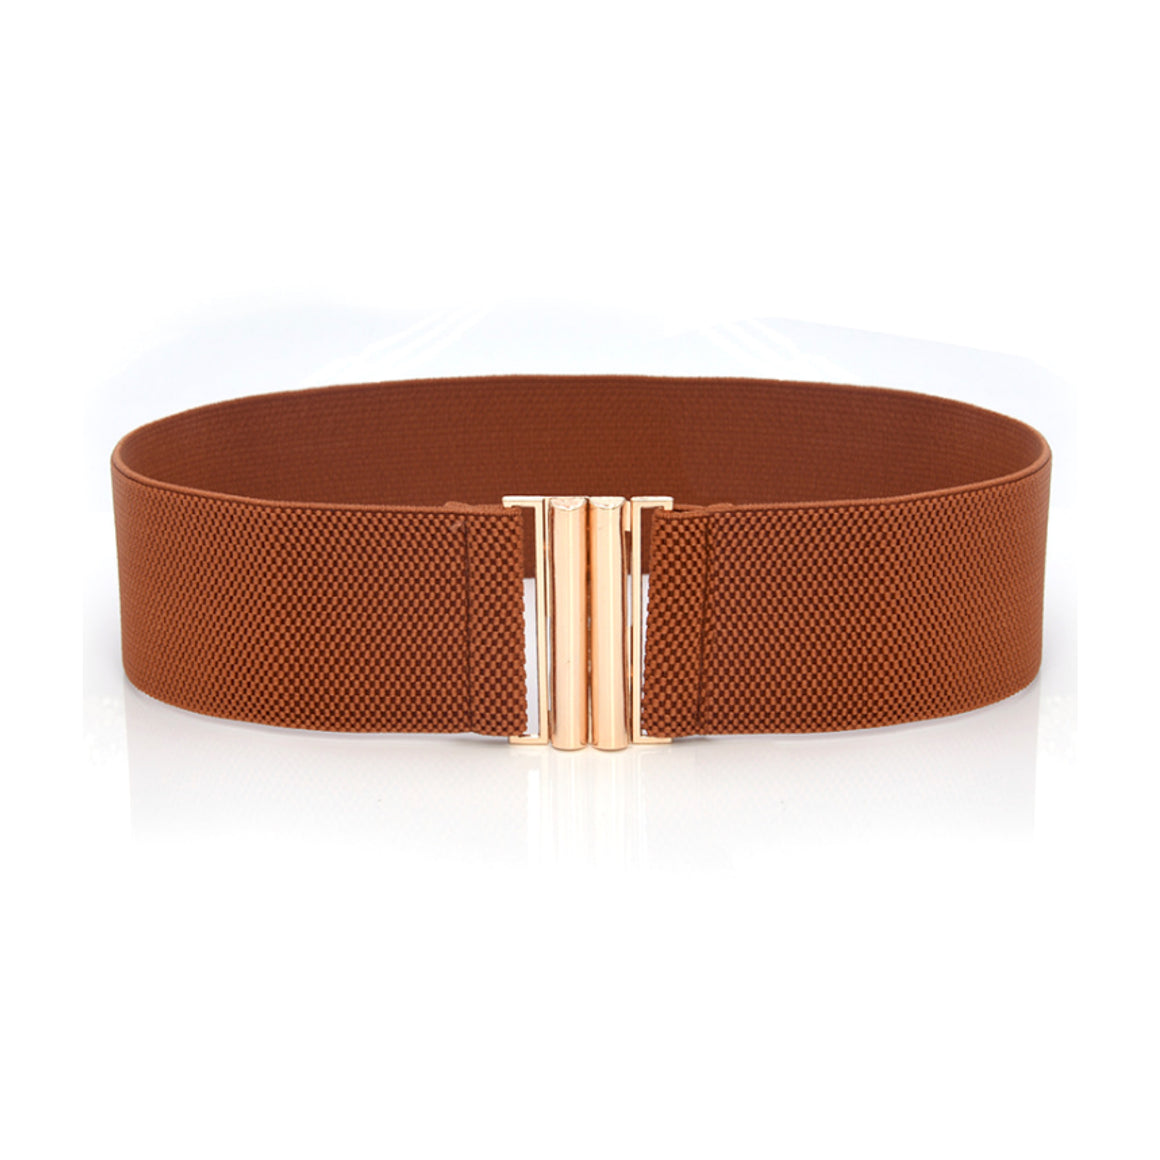 Basic Clasp Elastic Belt - Brown